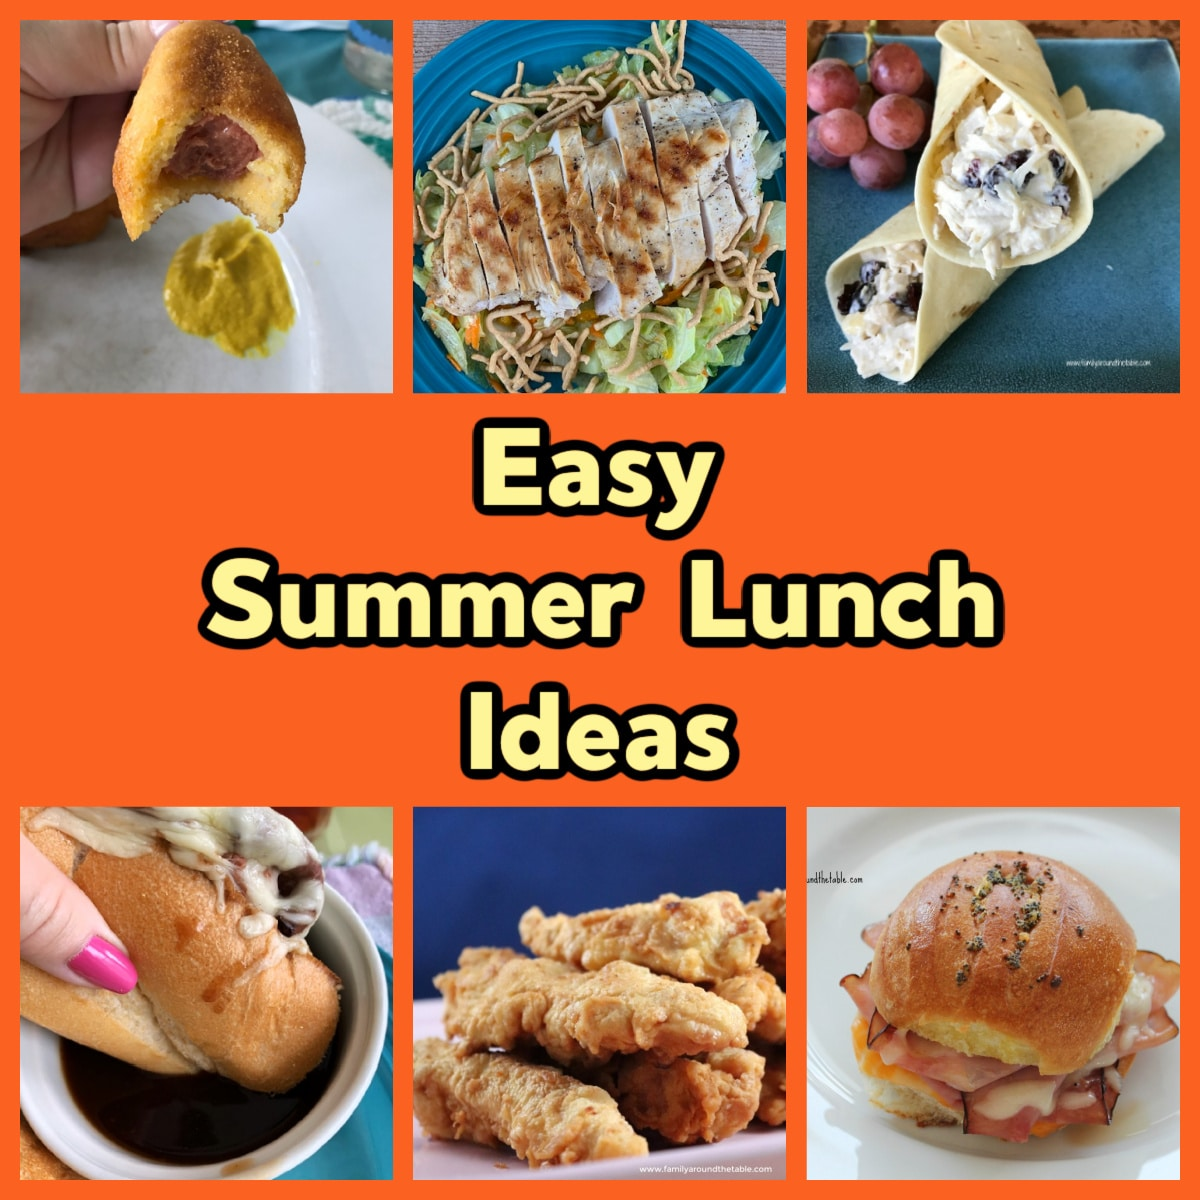 A collage of sandwiches, salads and finger foods for summer lunch ideas.